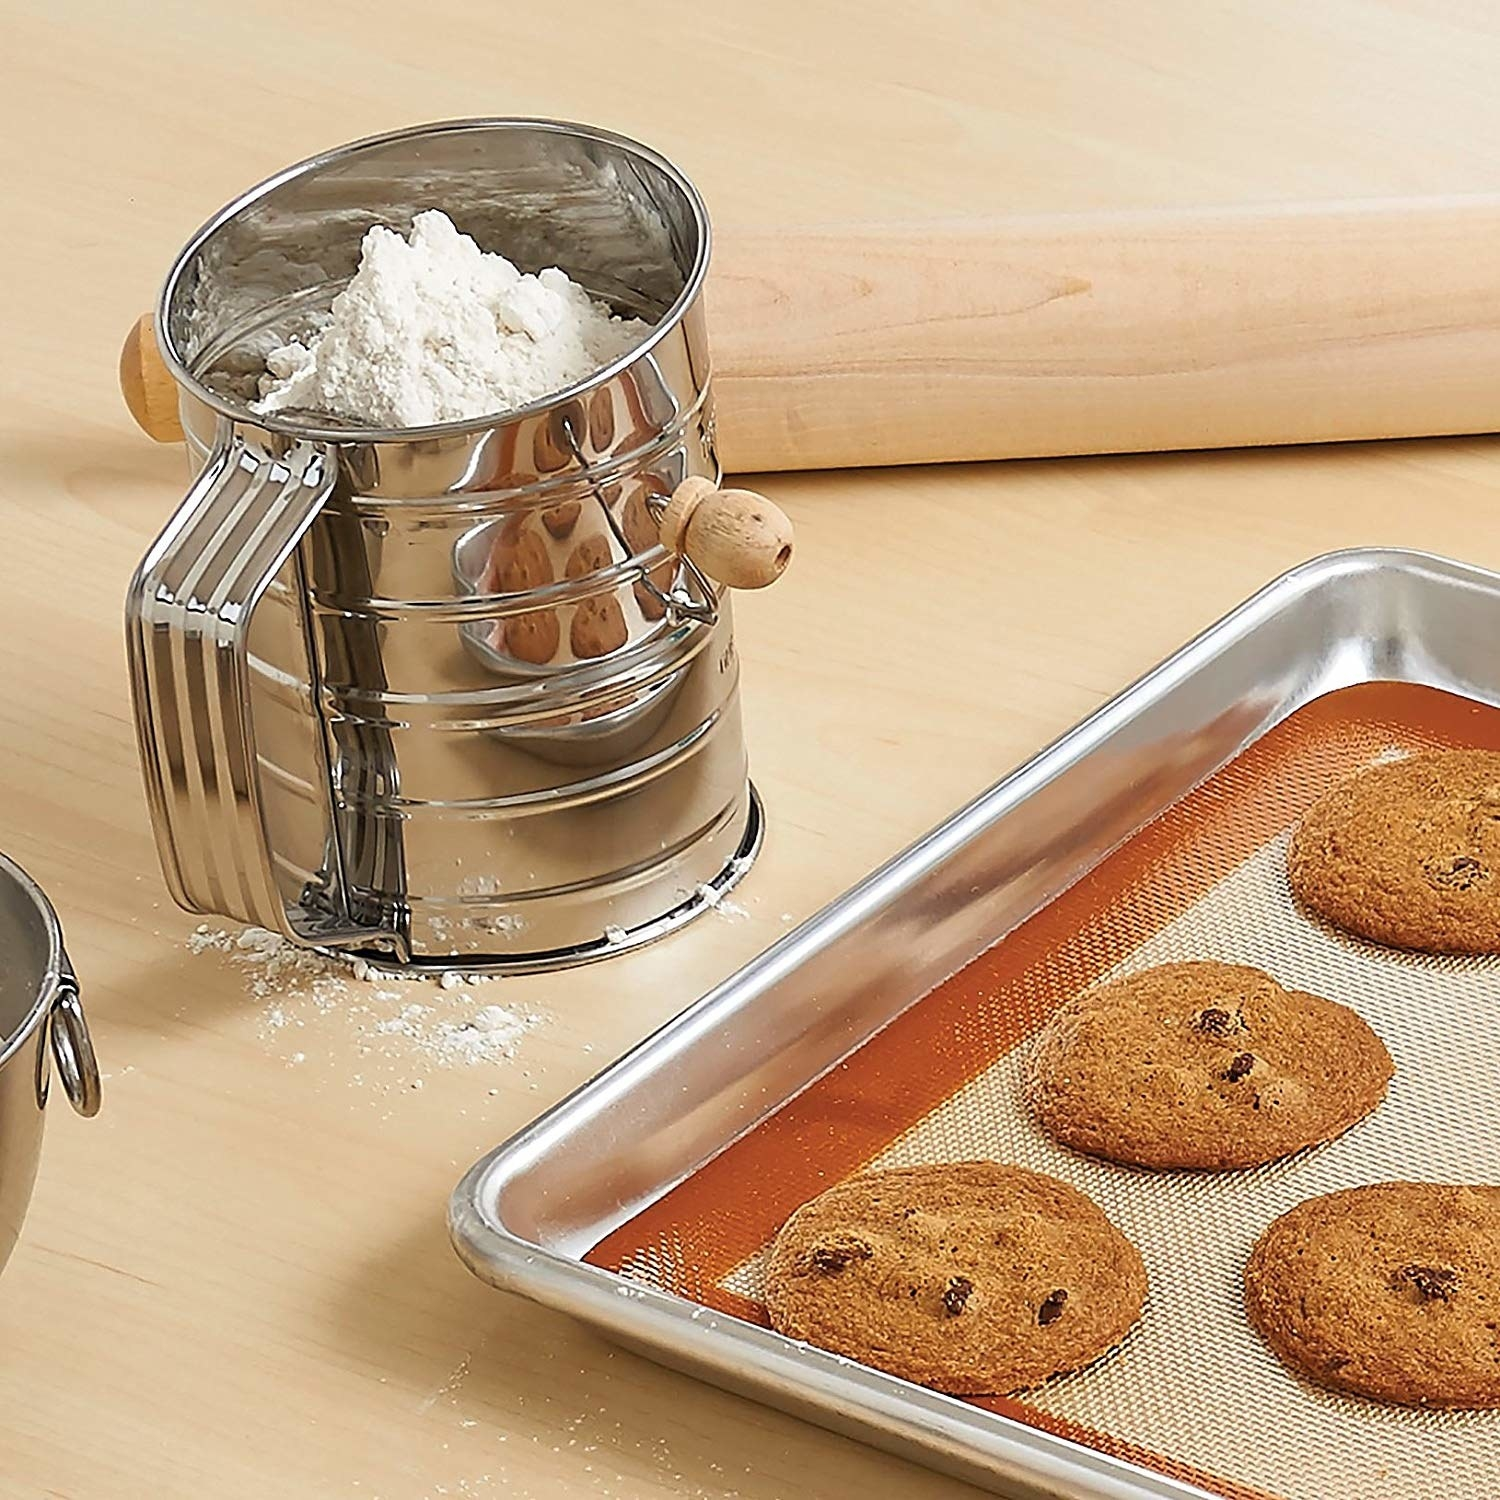 A small metal sifting cup filled with flower and placed next to a tray of cookies